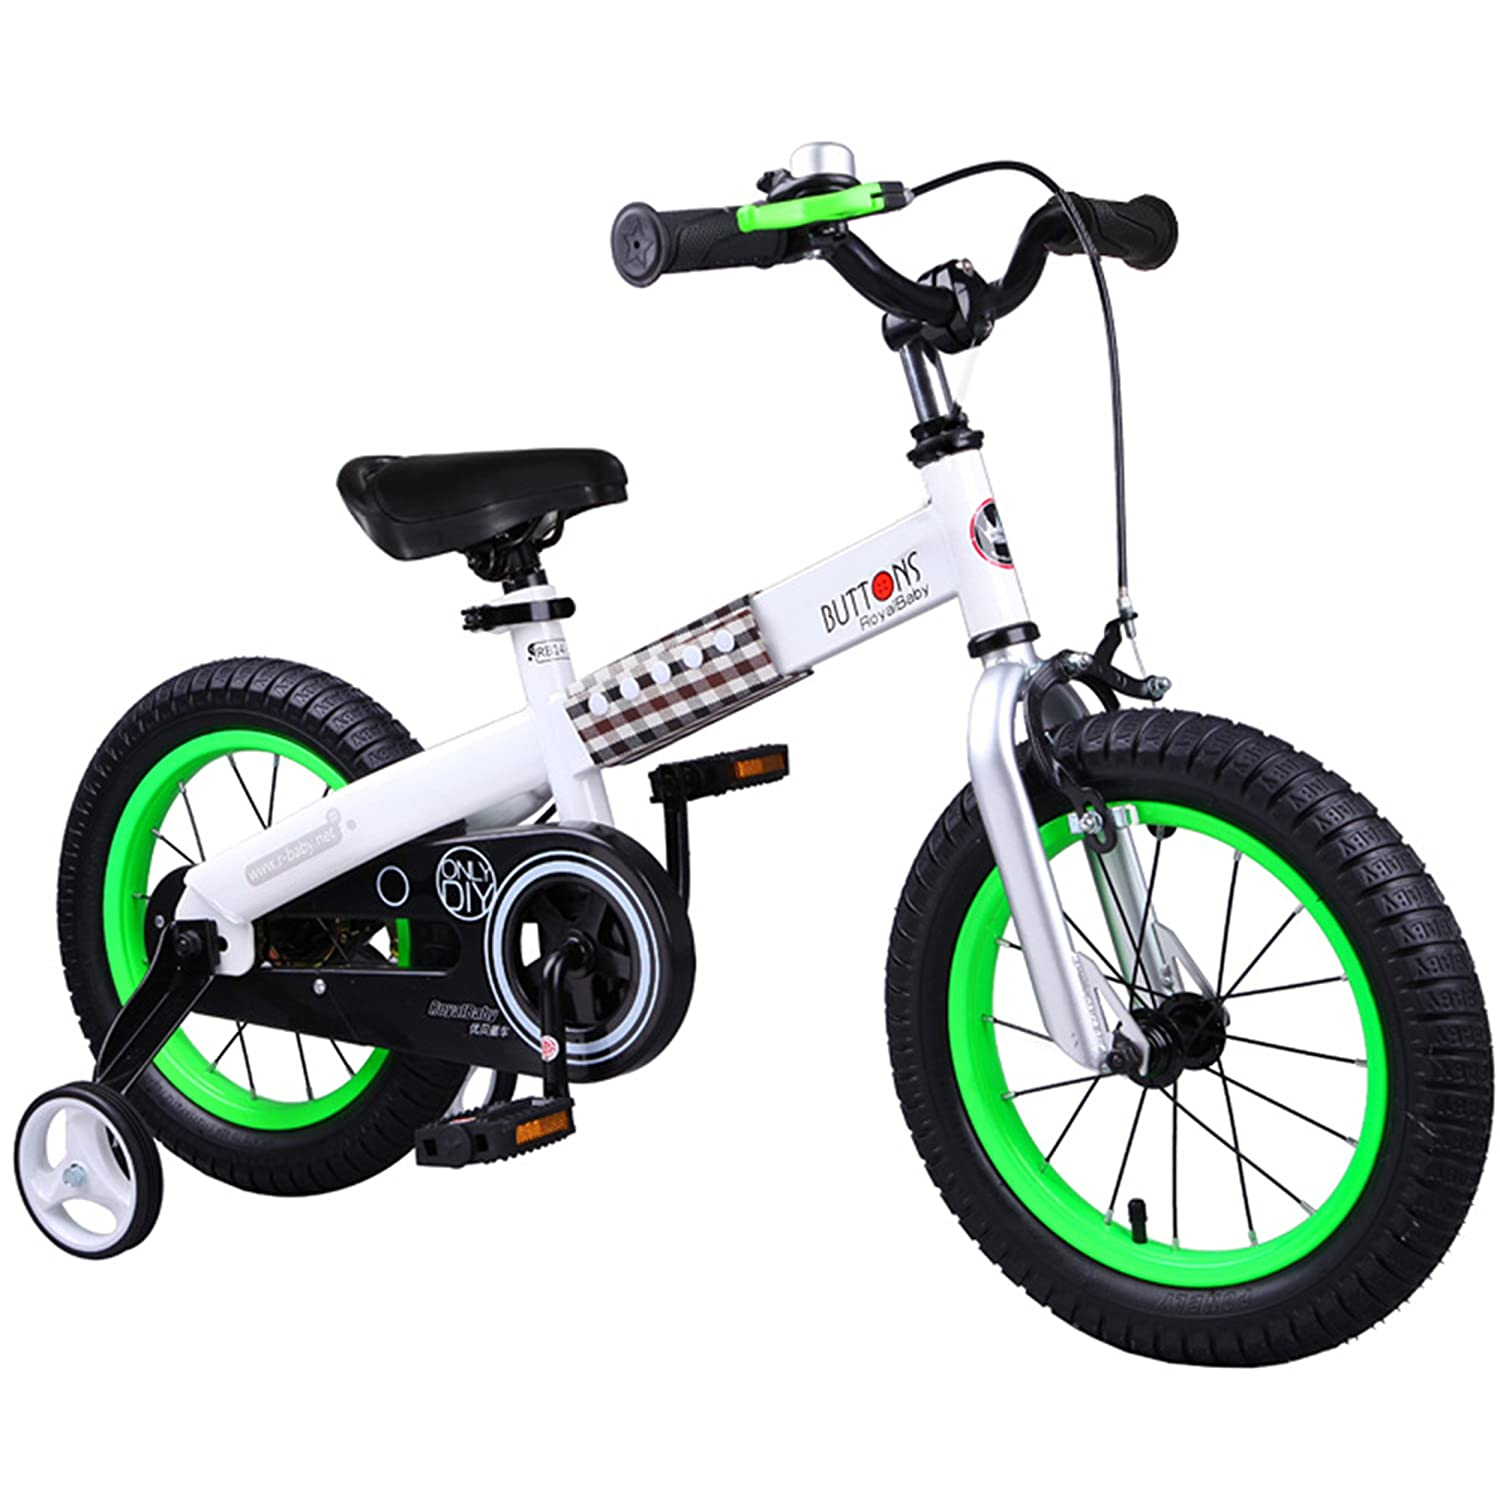 Bikes for 3 to 5 Year Olds